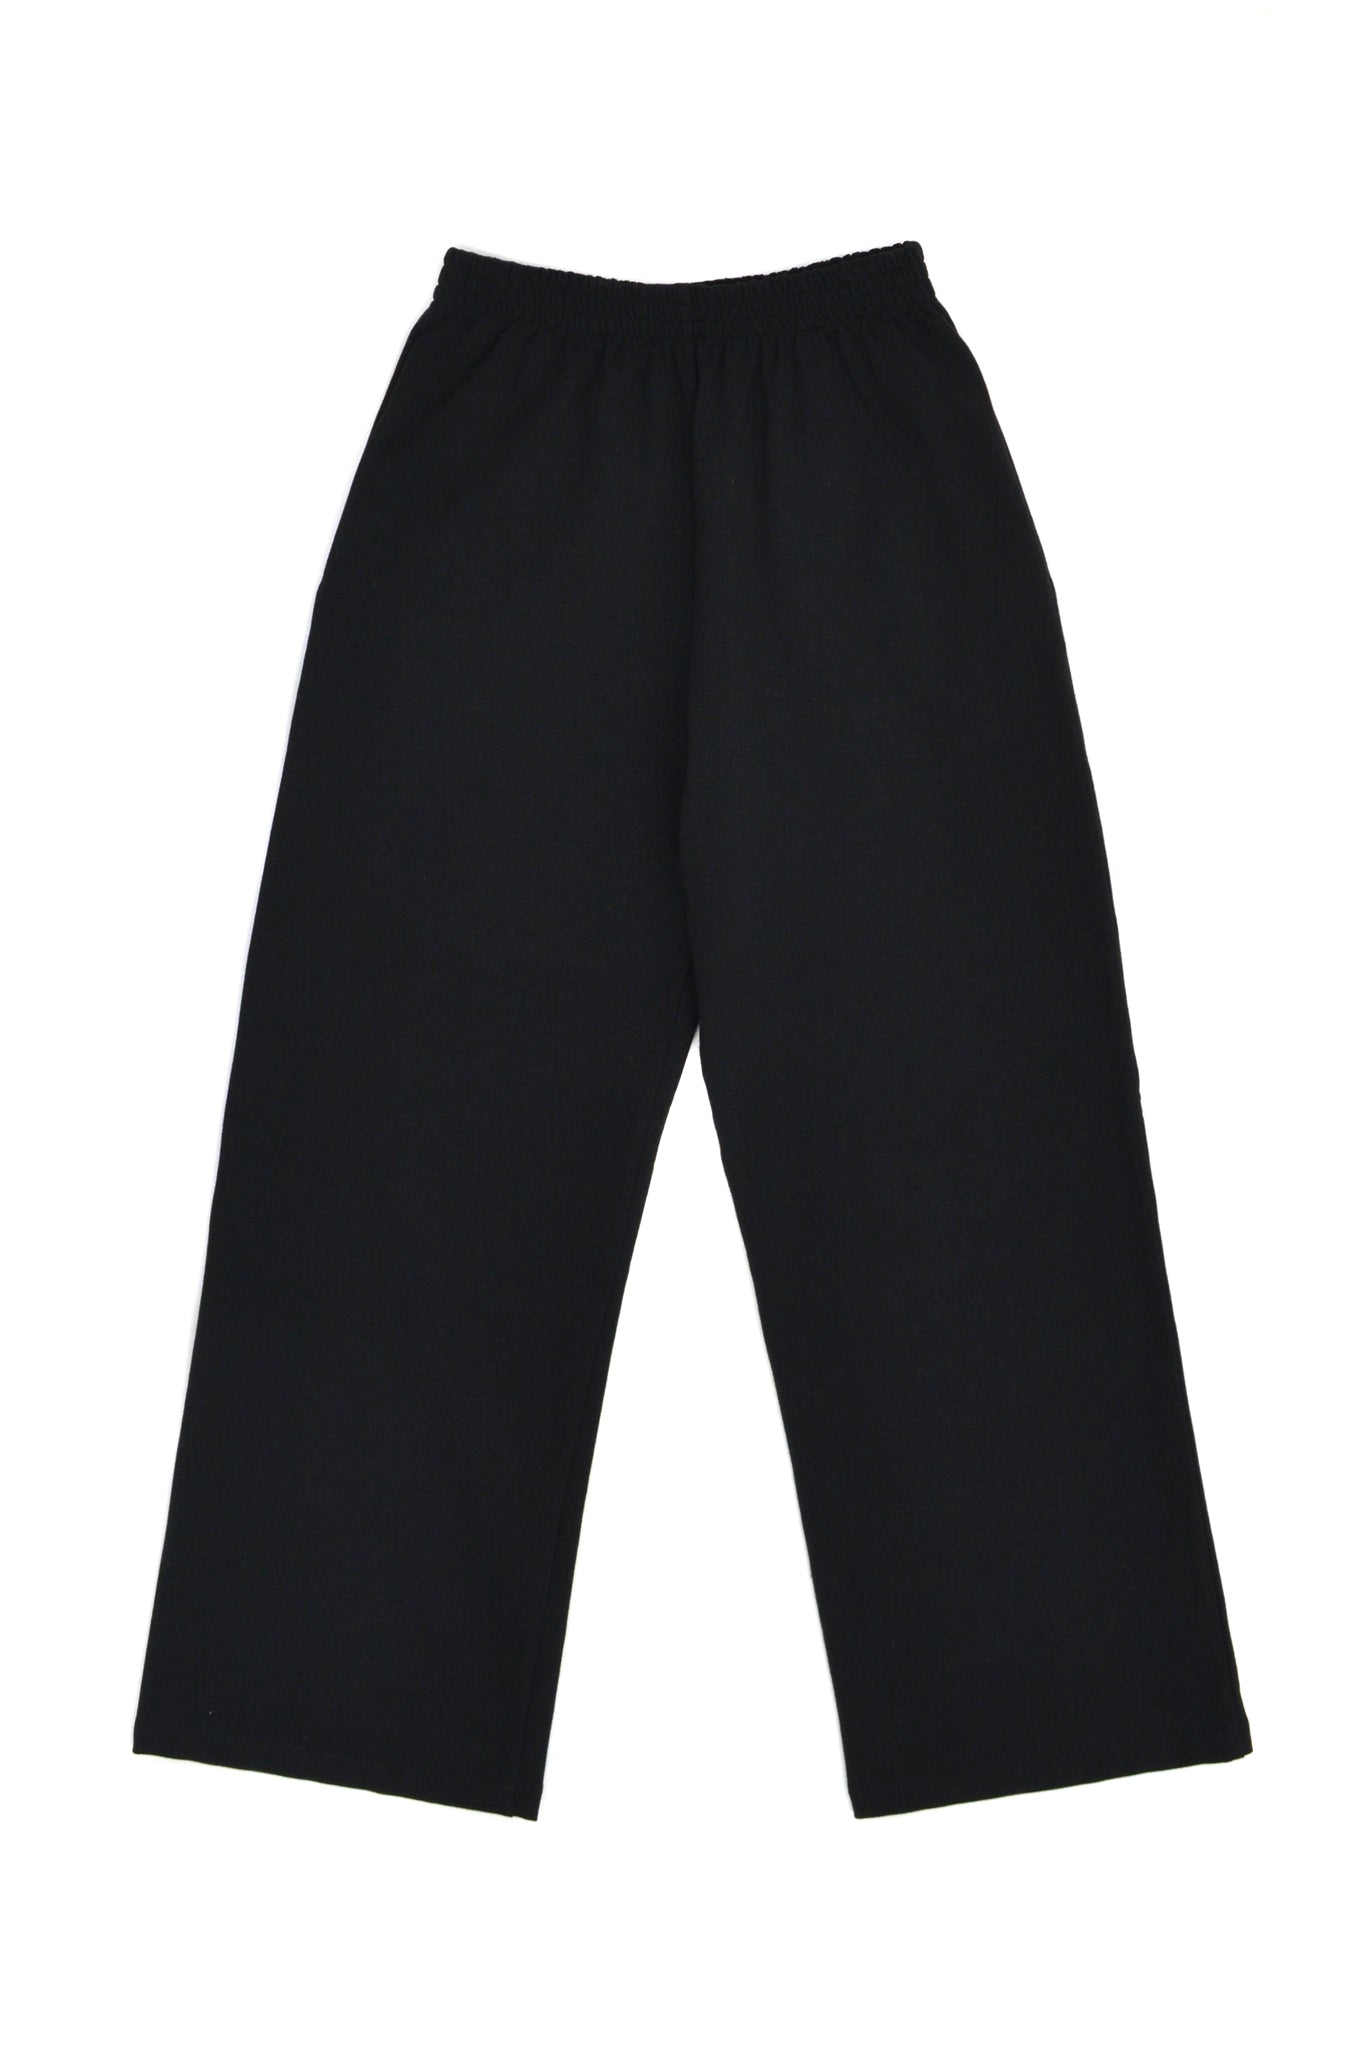 SOOP SOOP Cropped Trouser Sweats, Black